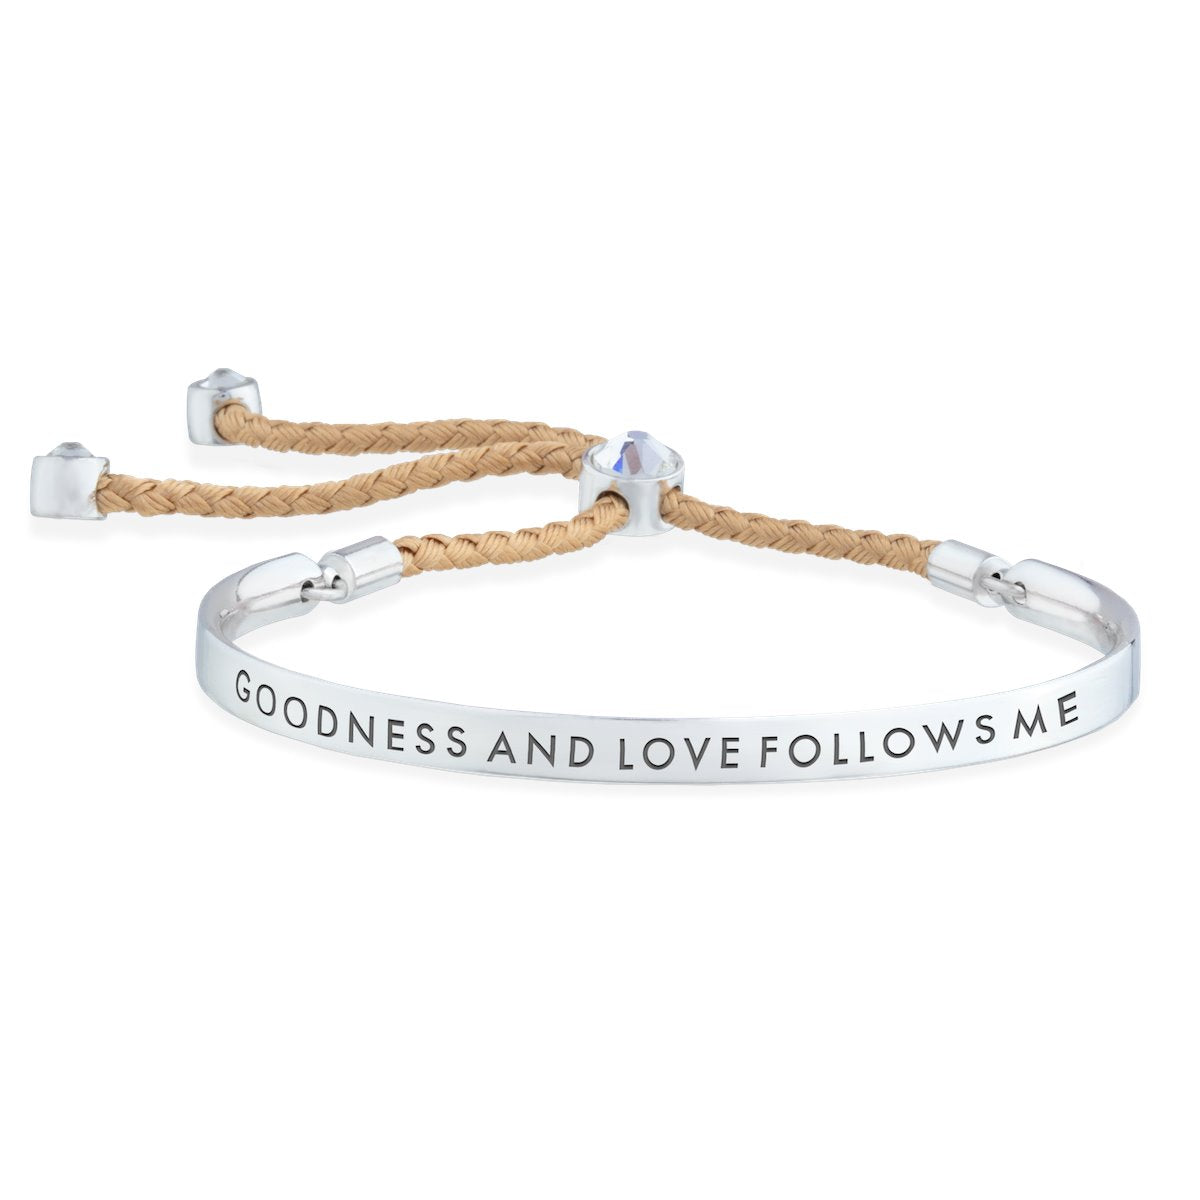 Goodness and Love Follows Me – Words of Empowerment Bracelet